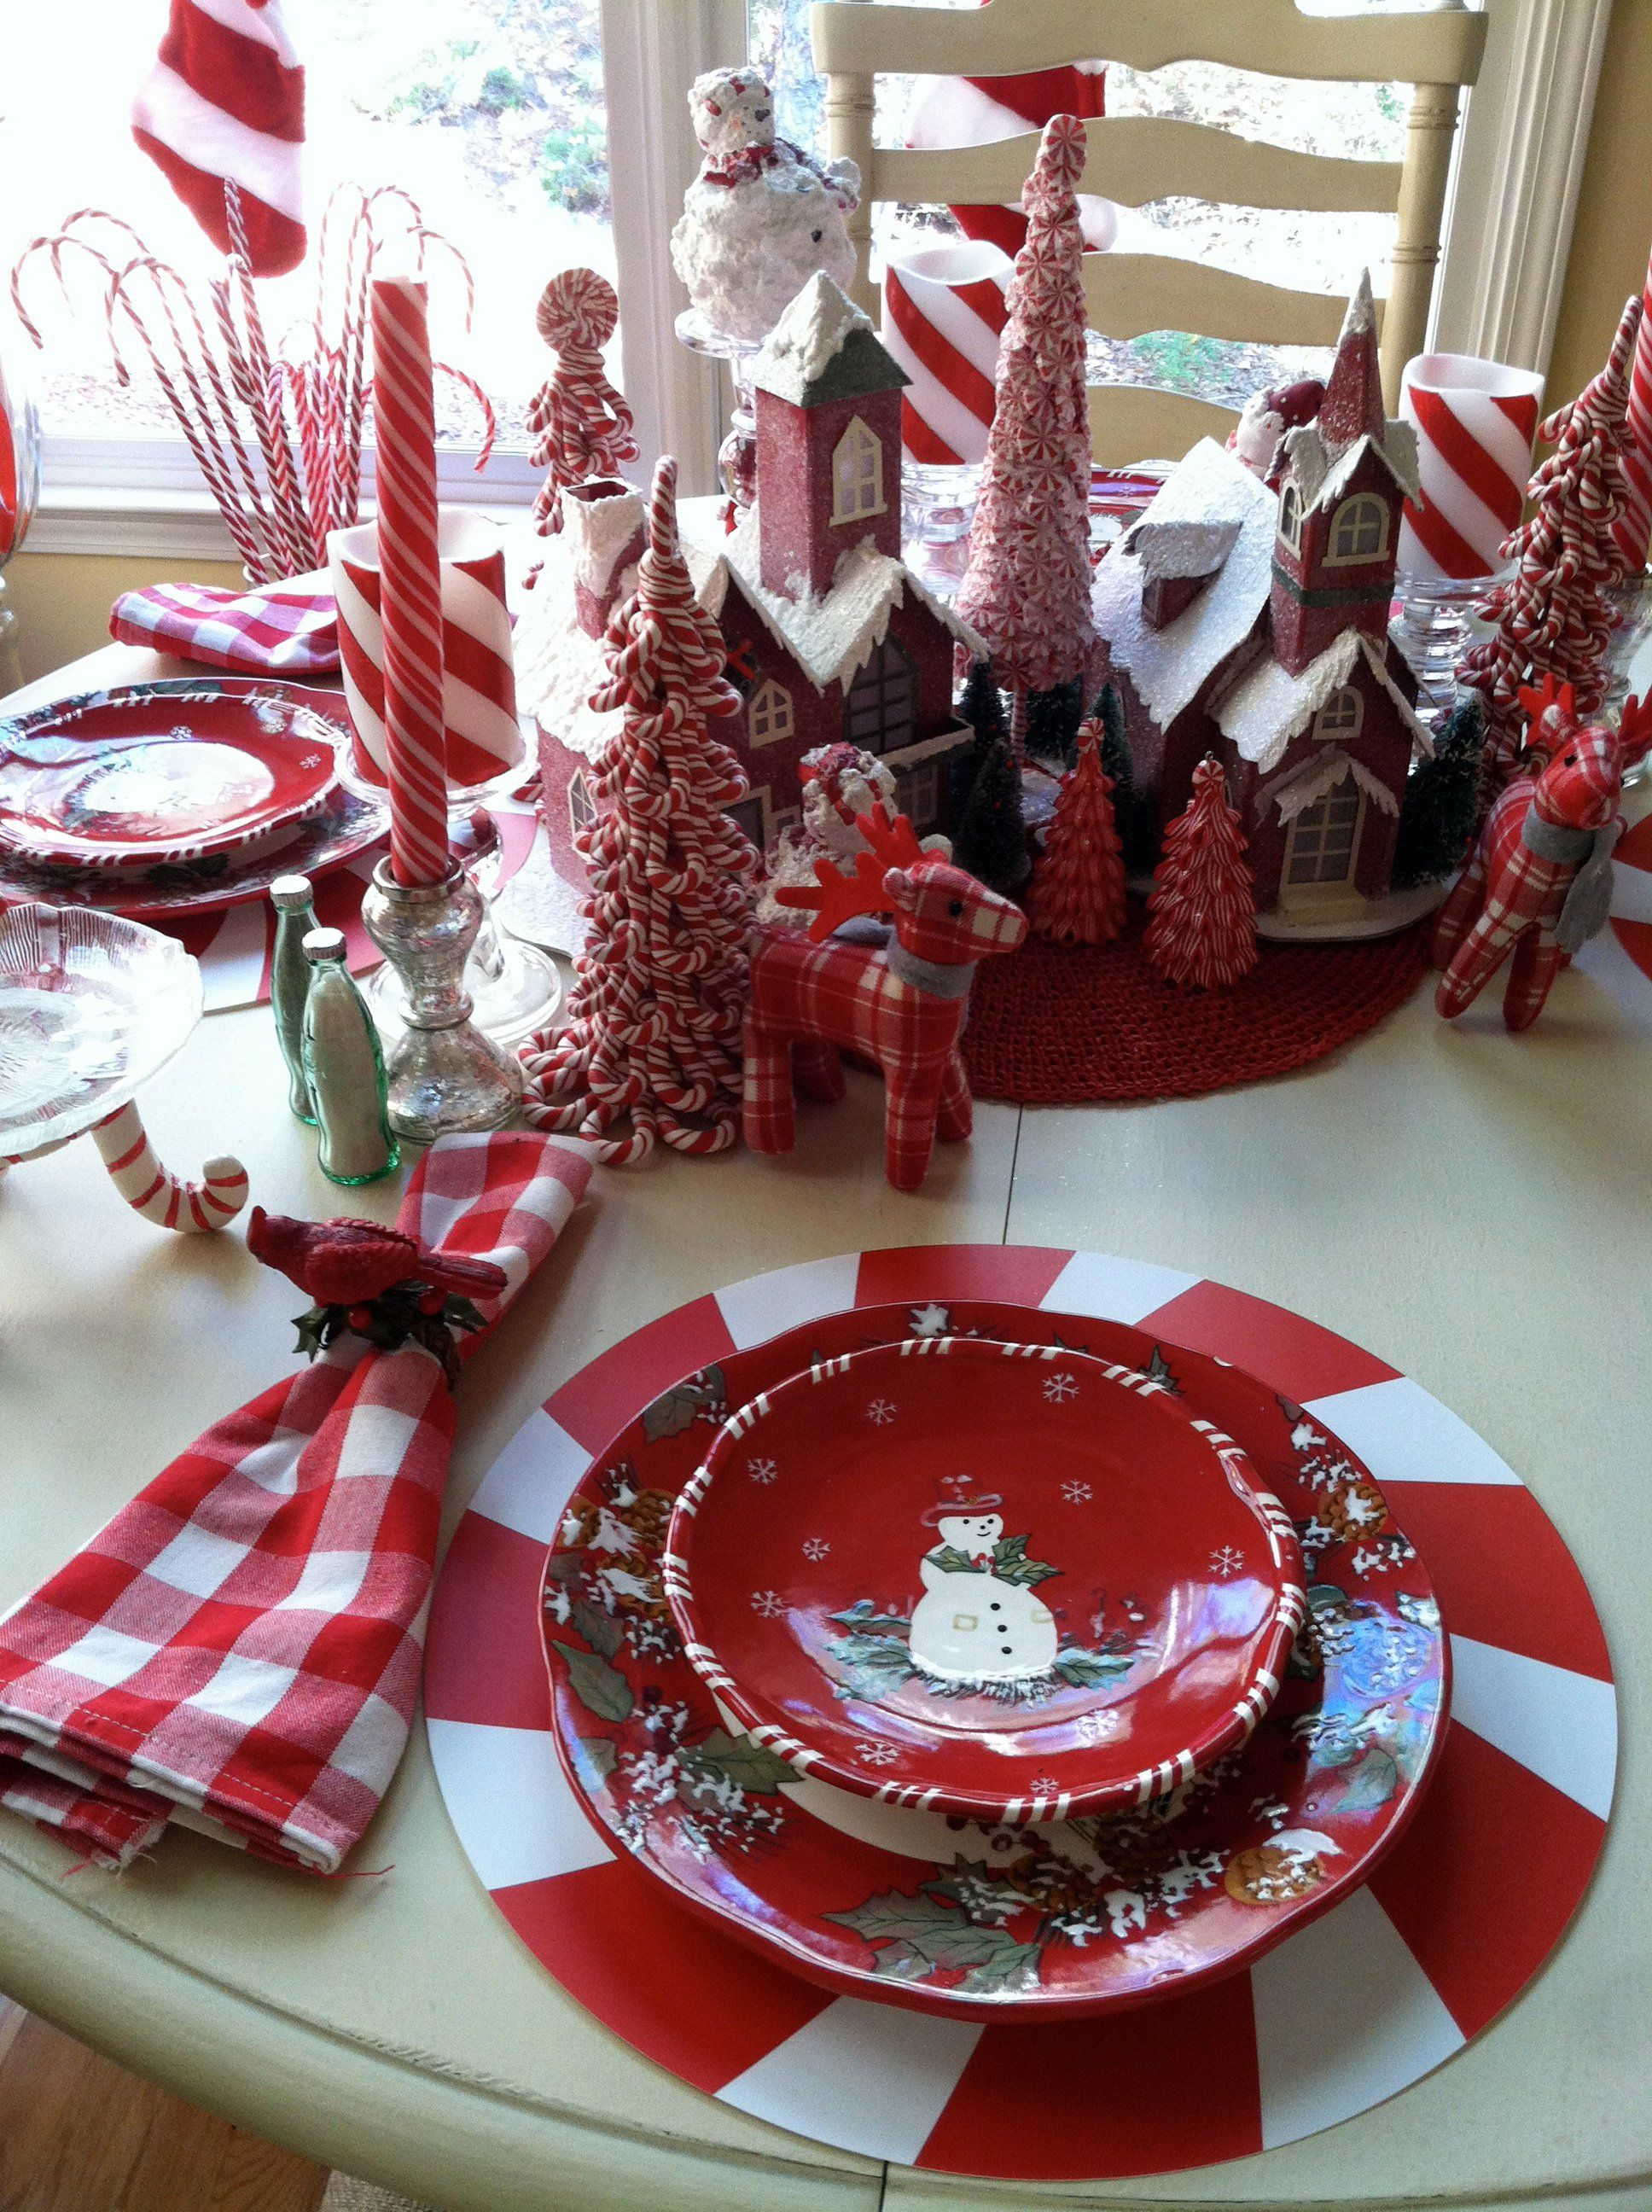 decorations christmas wall decorations inspiring ideas of elegant christmas table decorations with red glitter - Candy Cane Christmas Table Decorations